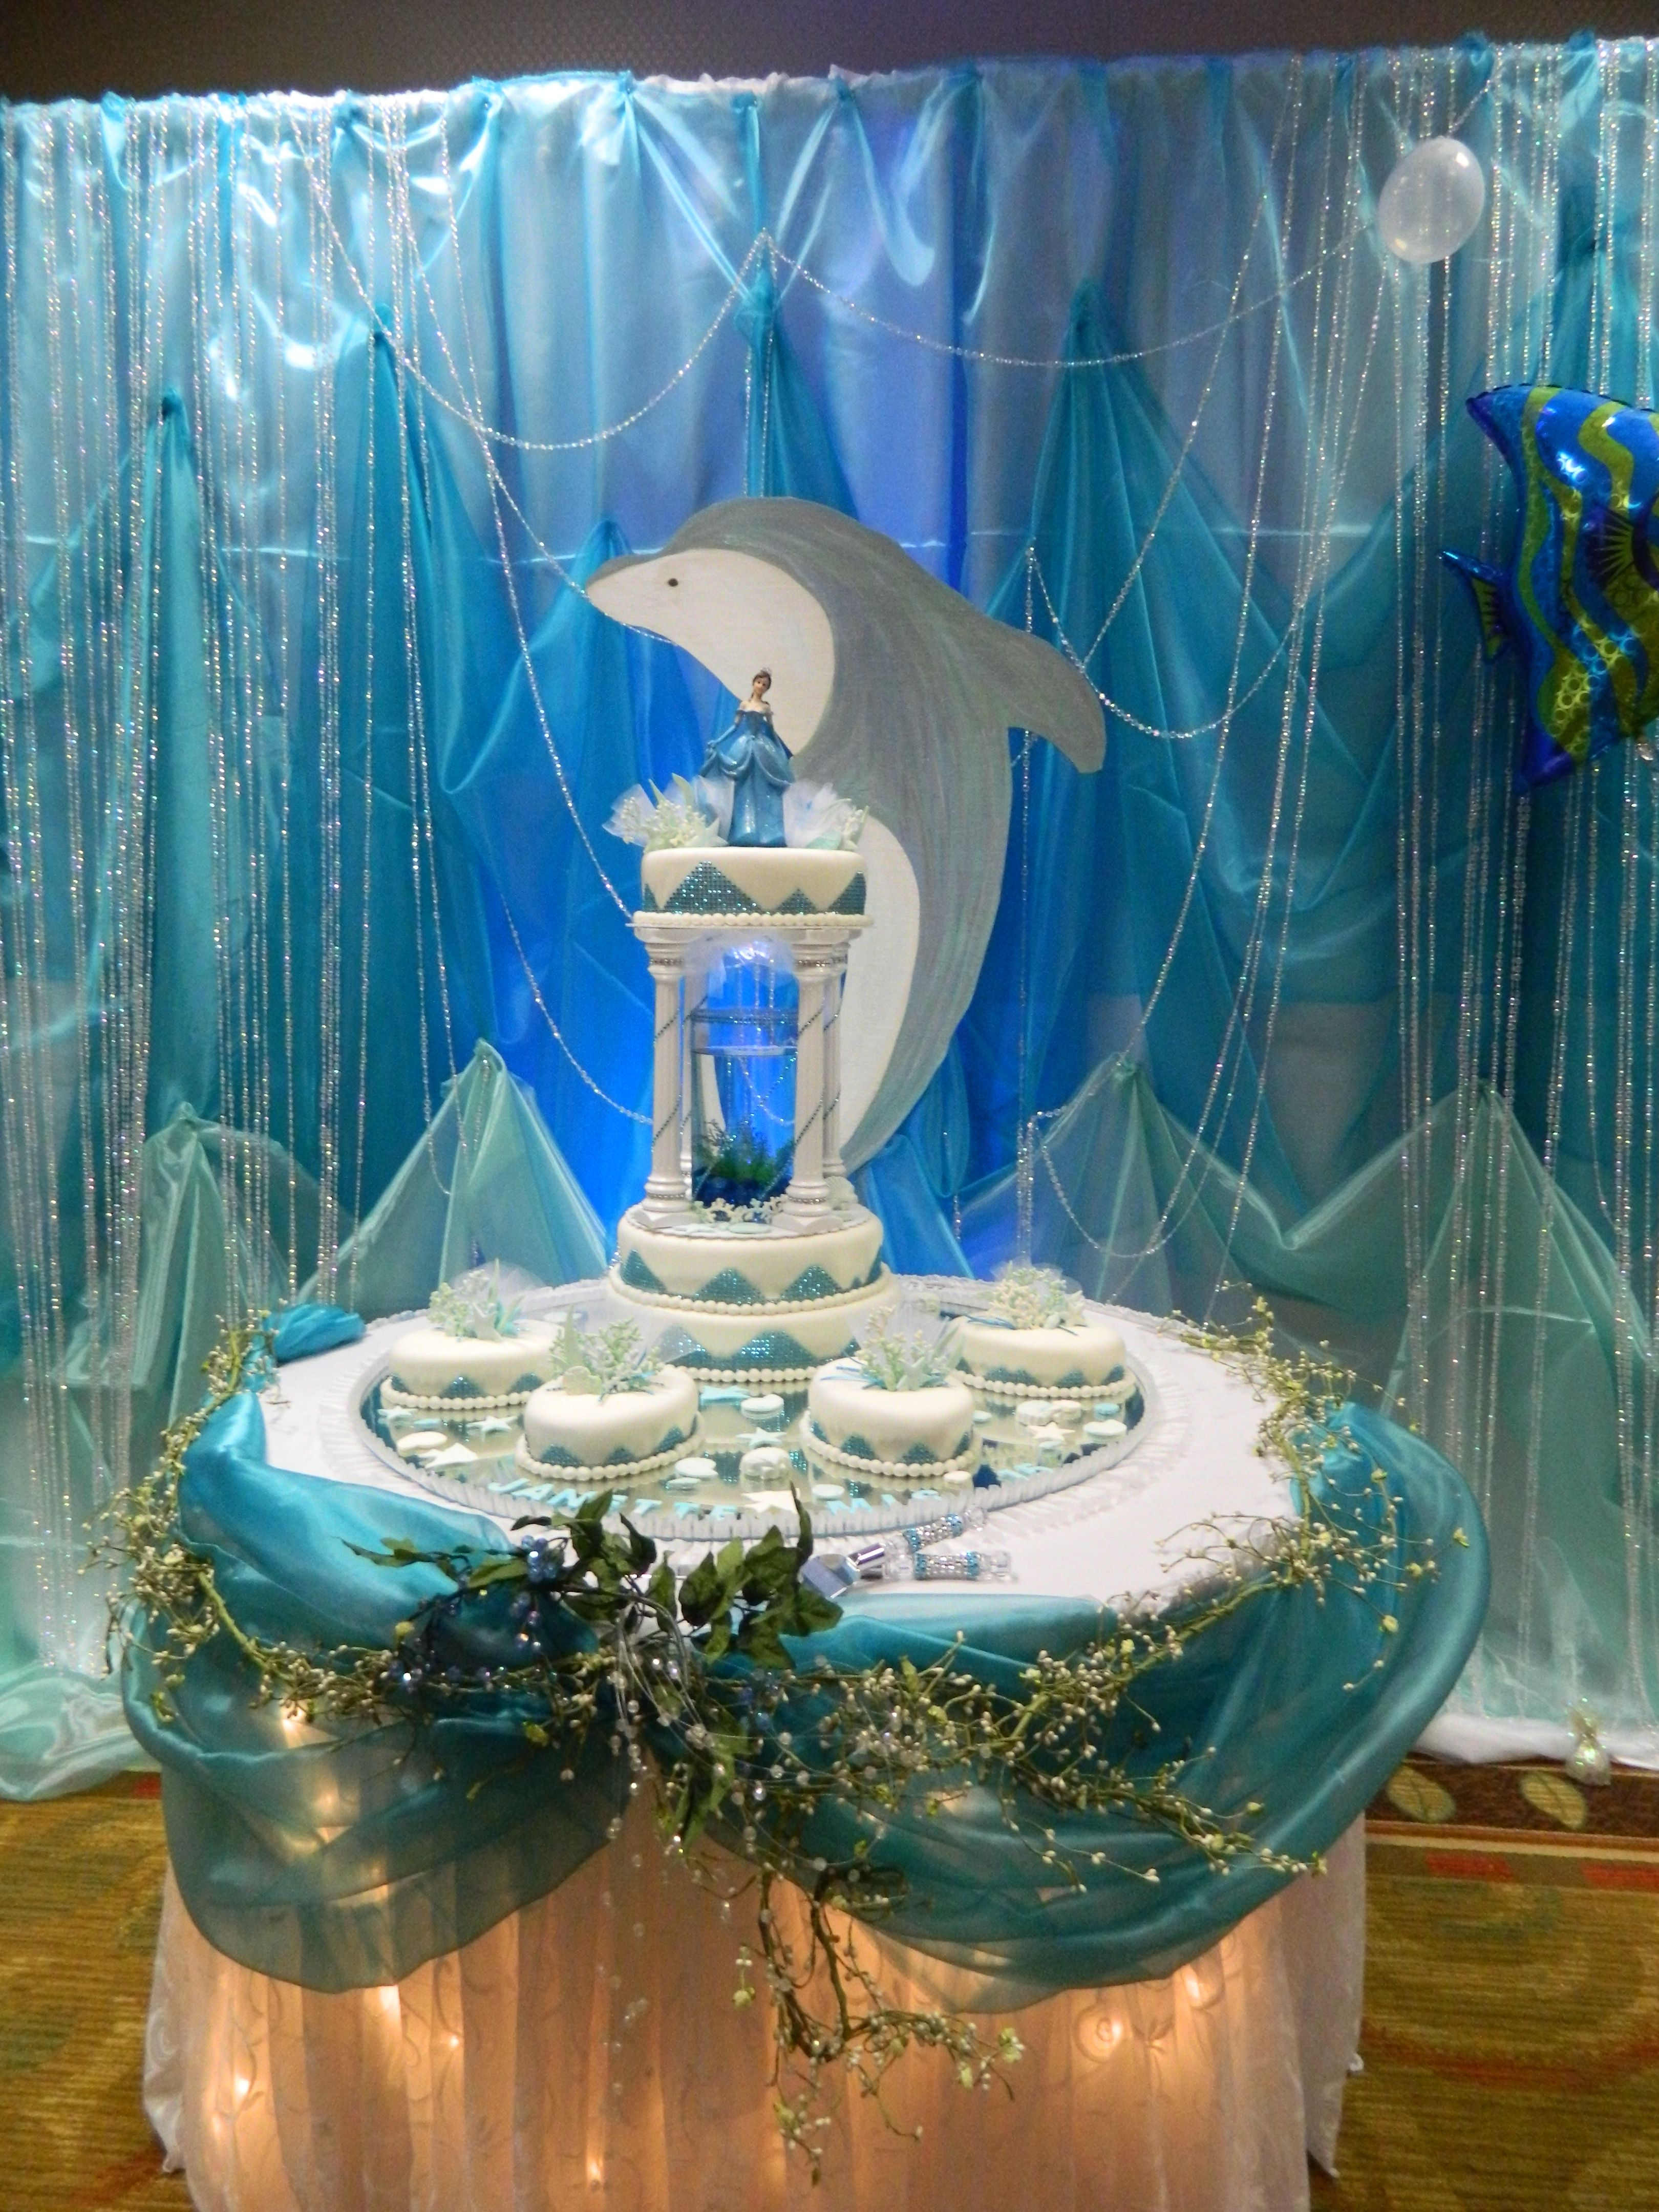 Pin by alia j todd on all styles pinterest for Sea themed decorating ideas